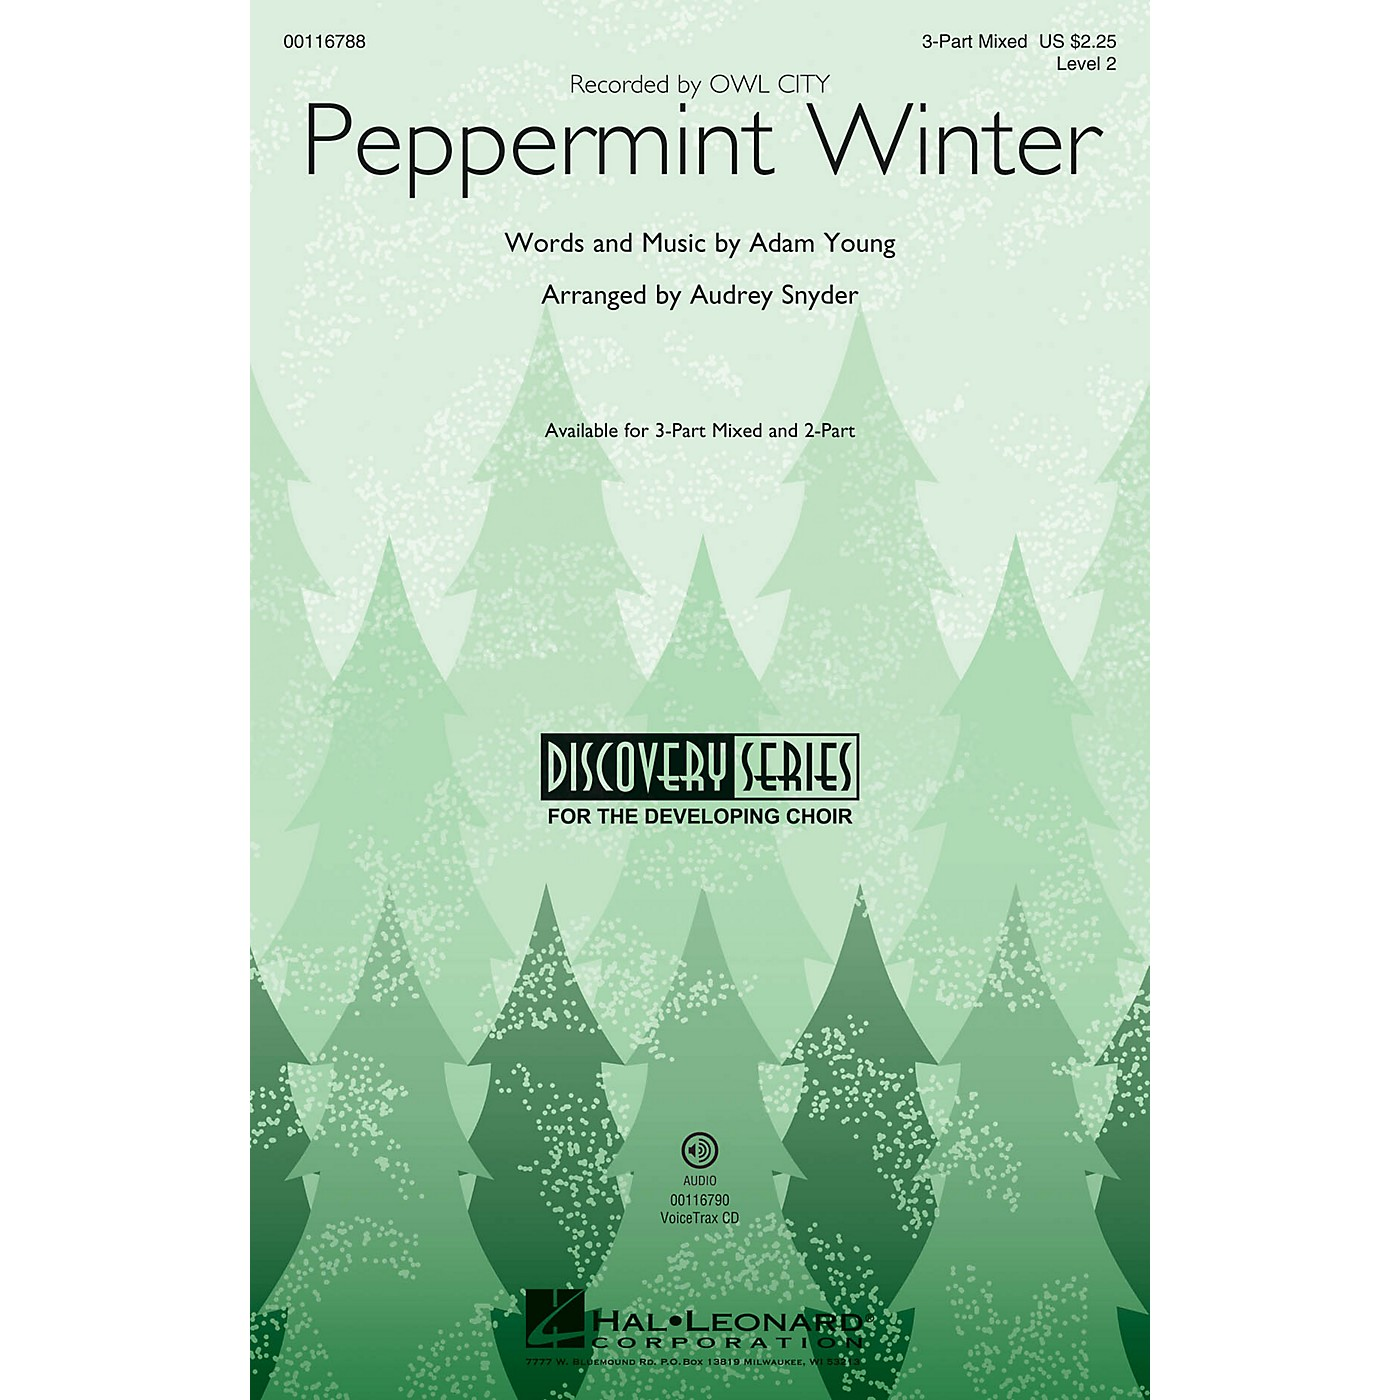 Hal Leonard Peppermint Winter (Discovery Level 2) 3-Part Mixed by Owl City arranged by Audrey Snyder thumbnail